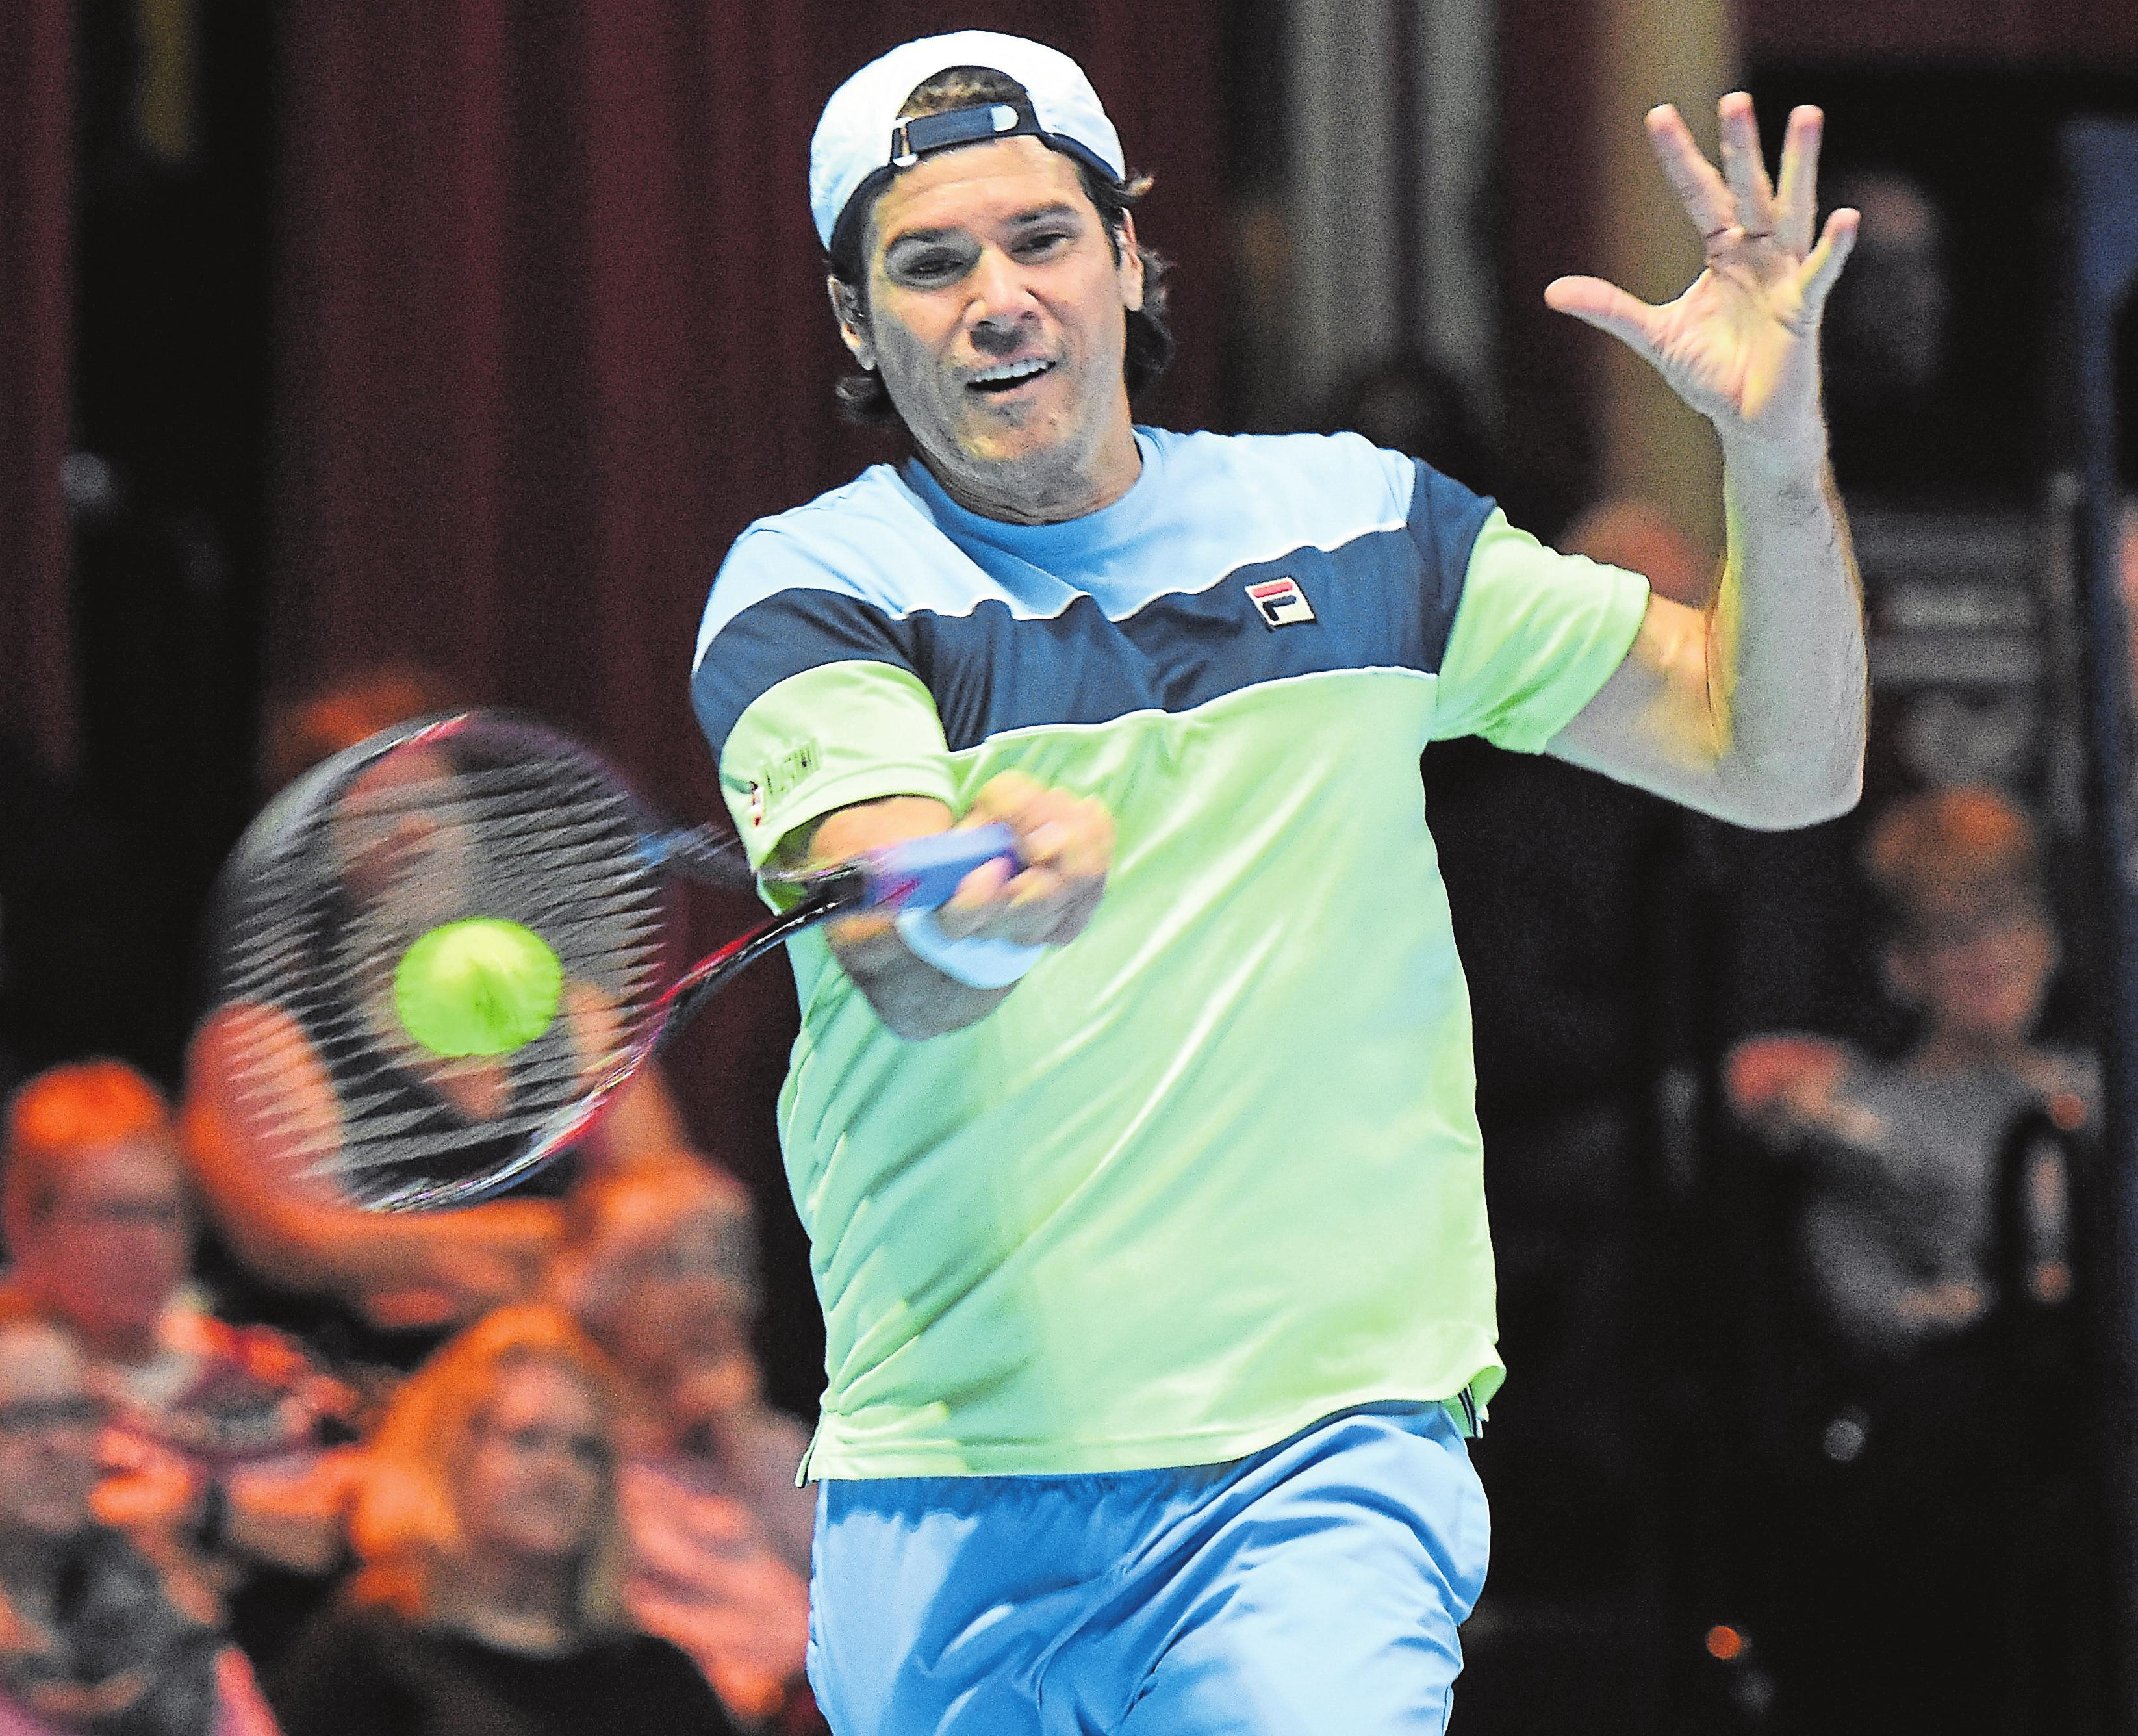 Tommy Haas Photo: Royal Albert Hall